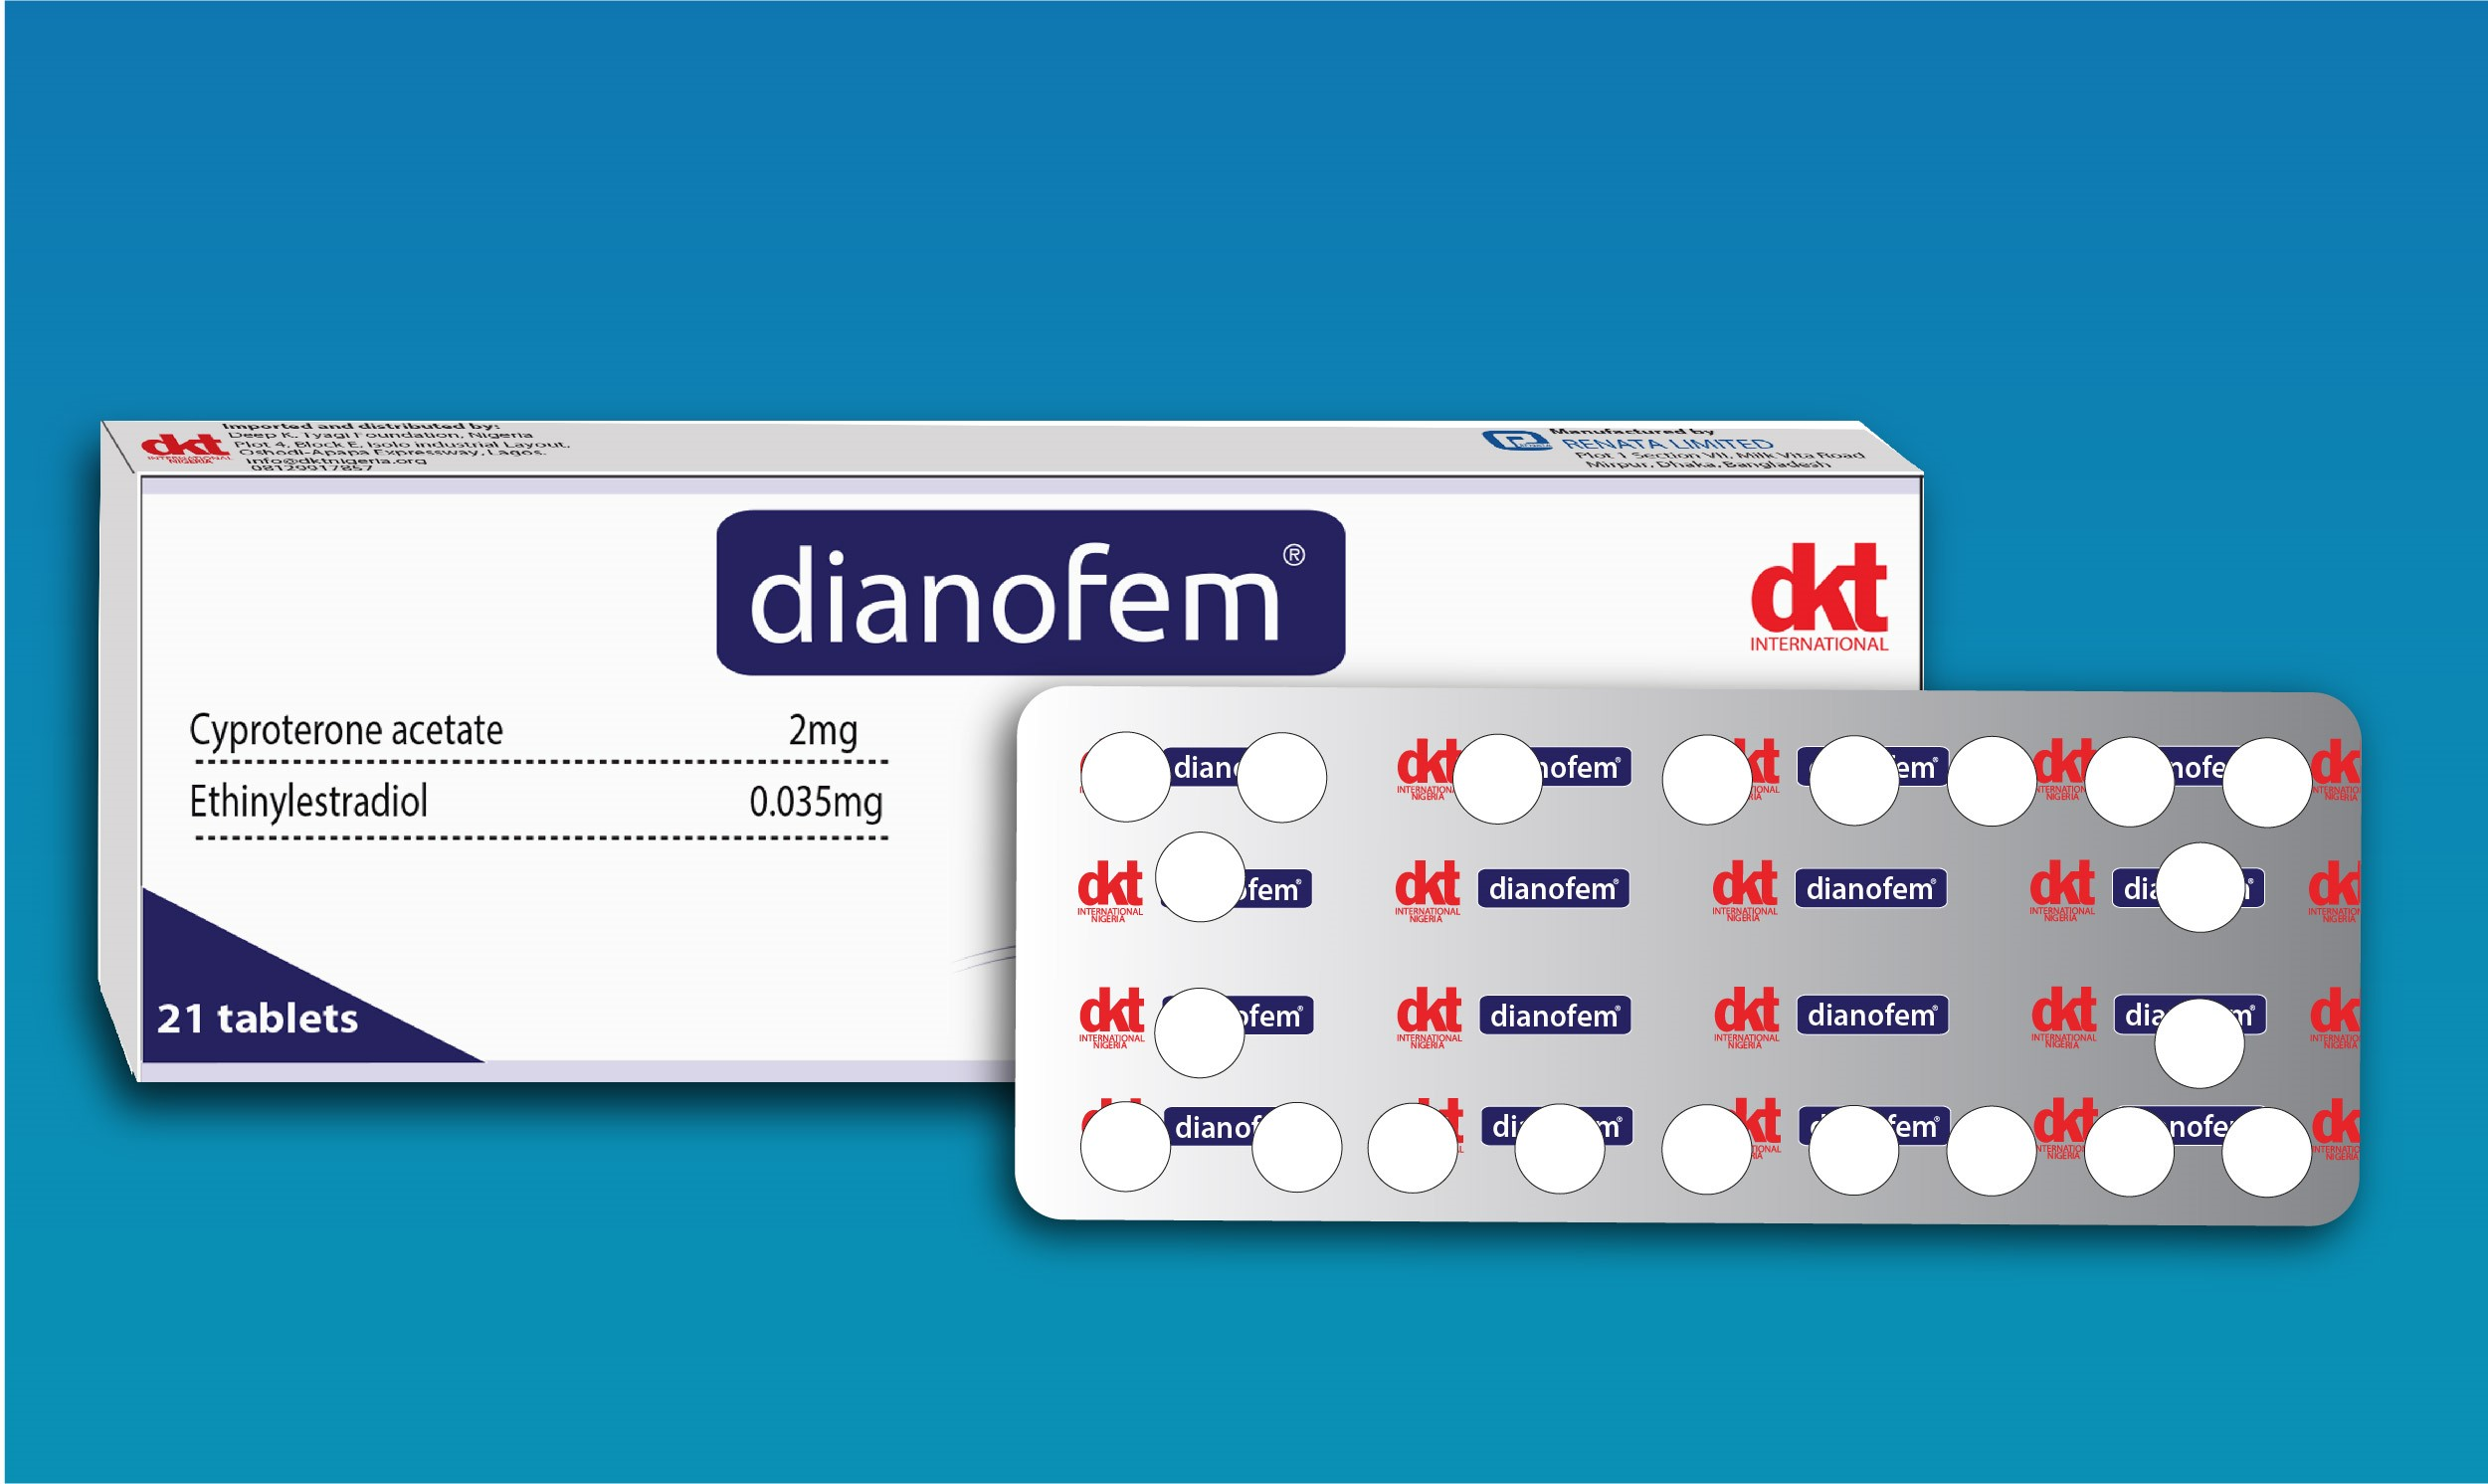 DKT Nigeria Launches Two New Generation Oral Contraceptive Pills